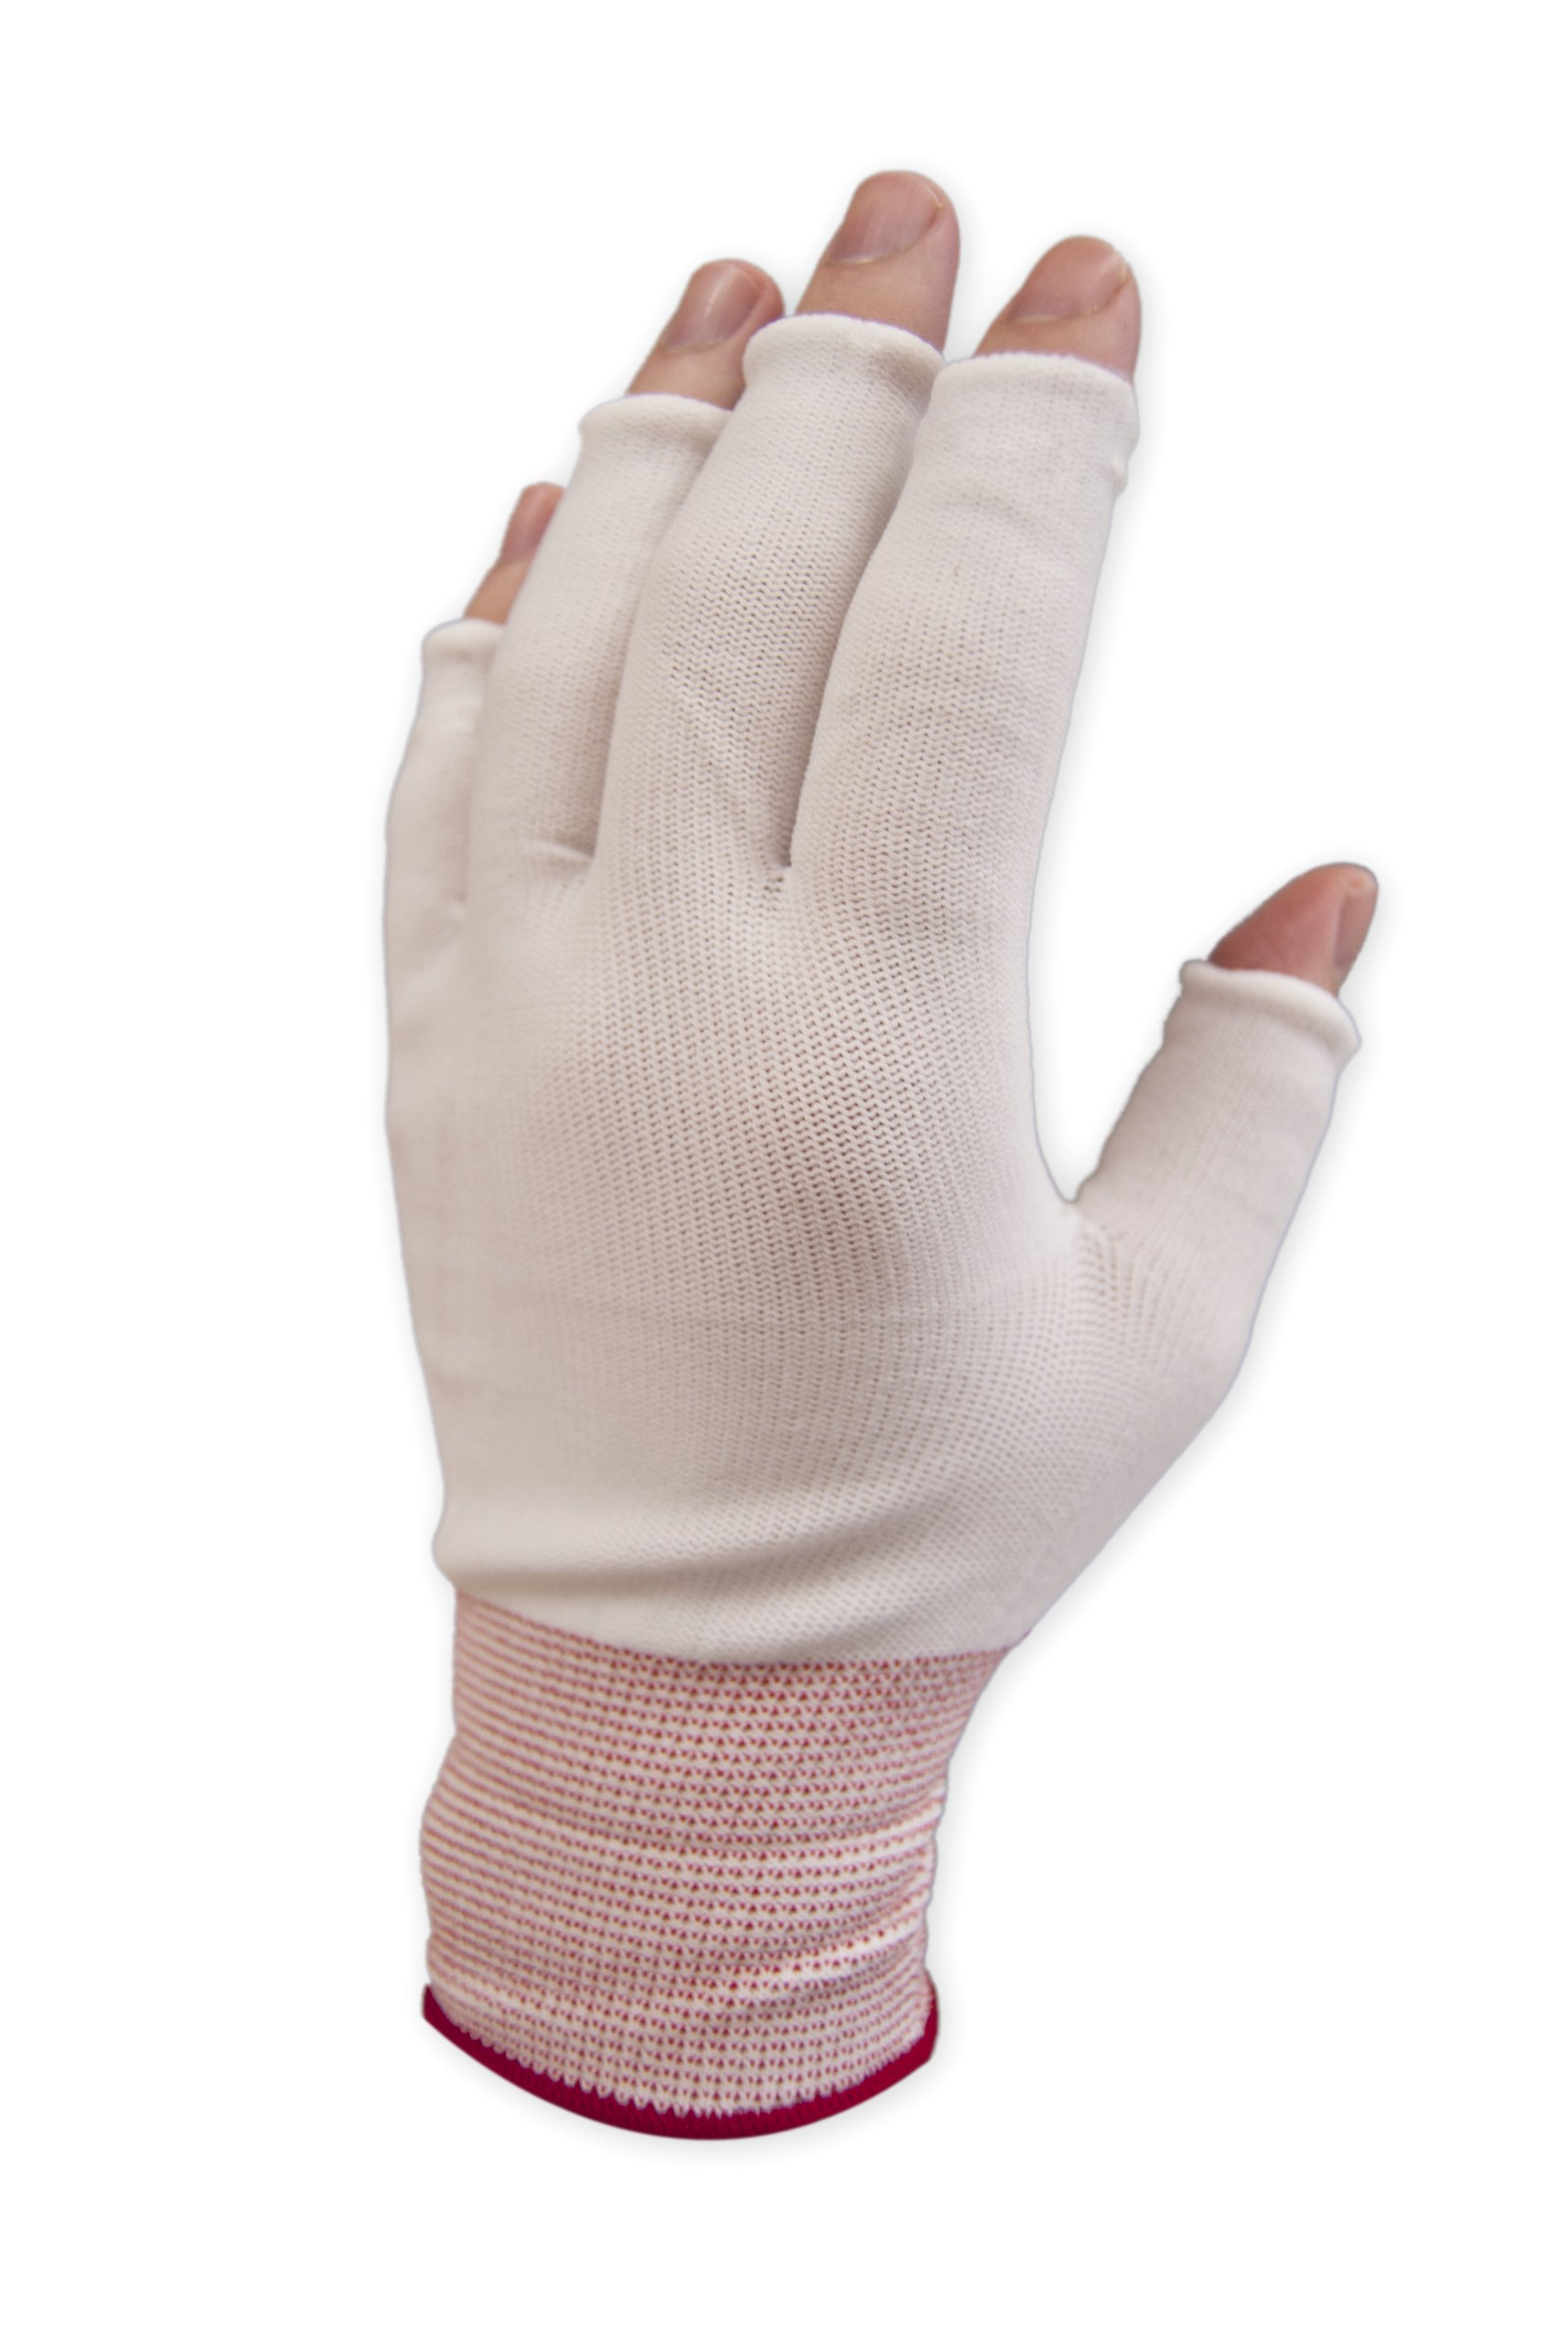 Purus GLHF-XL Nylon Half Finger Knit Glove Liner Cuff, 1.7 Mils Thick, Extra Large (Pack of 300 Pairs)